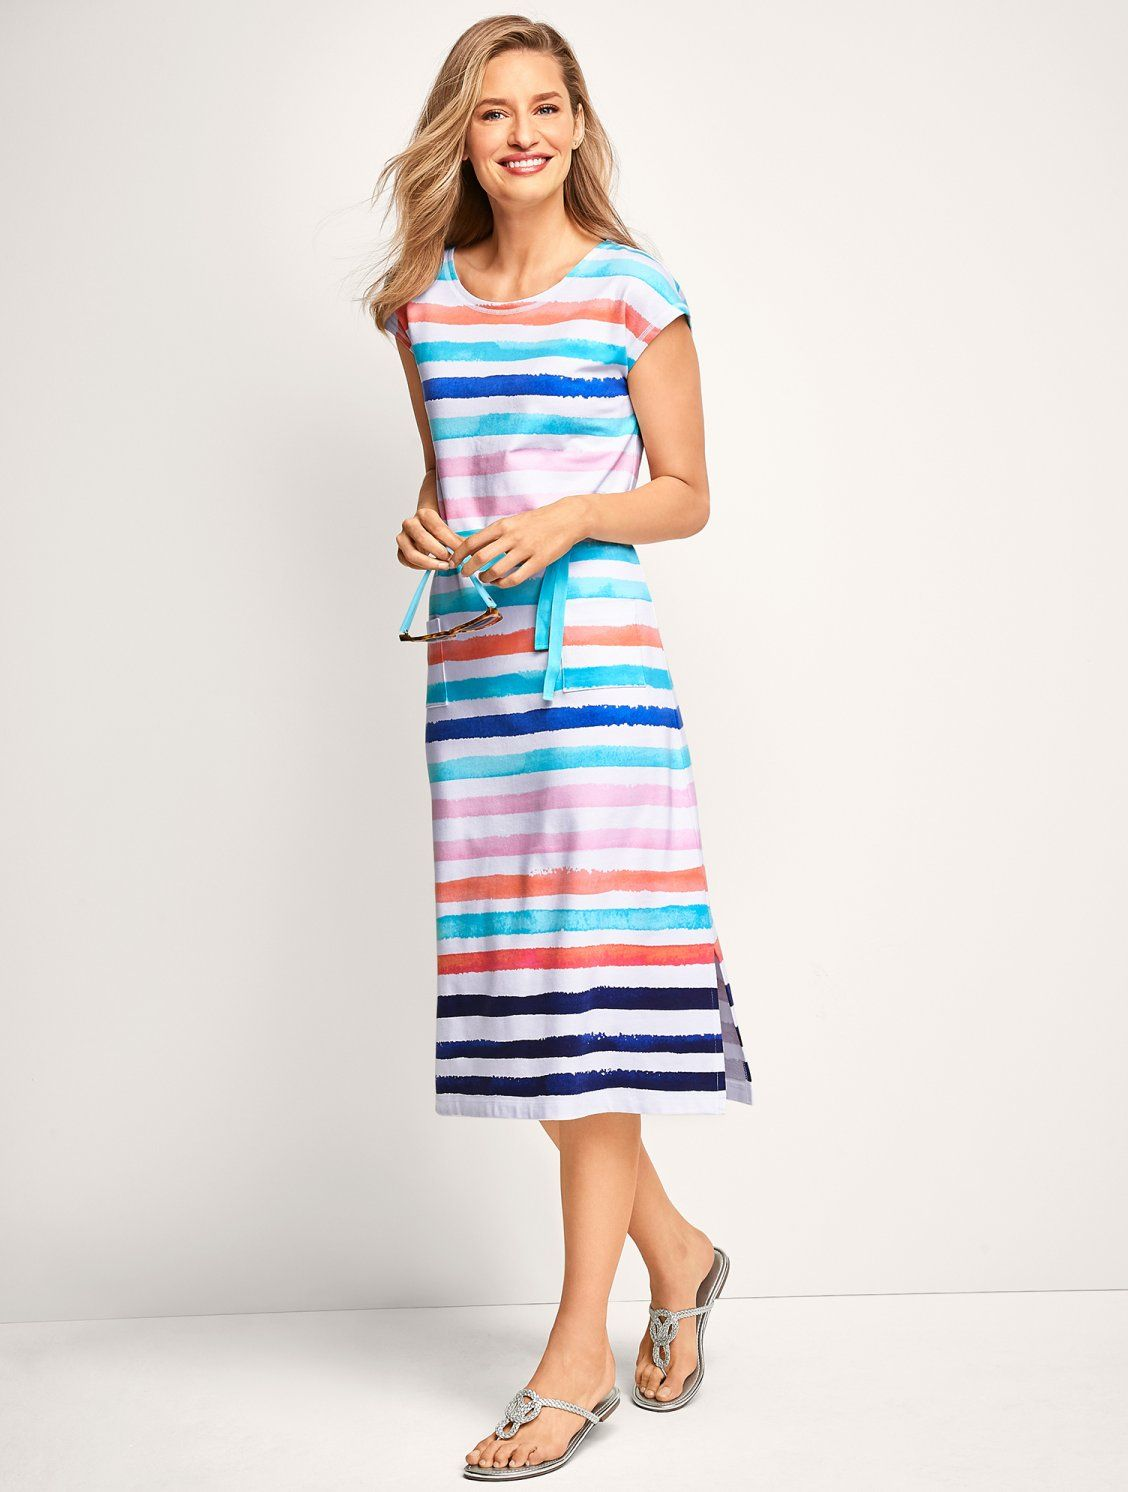 Painterly Stripes Give This Ultra Comfortable Midi Dress Artistic Flair Mix With Your Favorite Sandals And You Re Ready Striped Midi Dress Dresses Midi Dress [ 1492 x 1128 Pixel ]